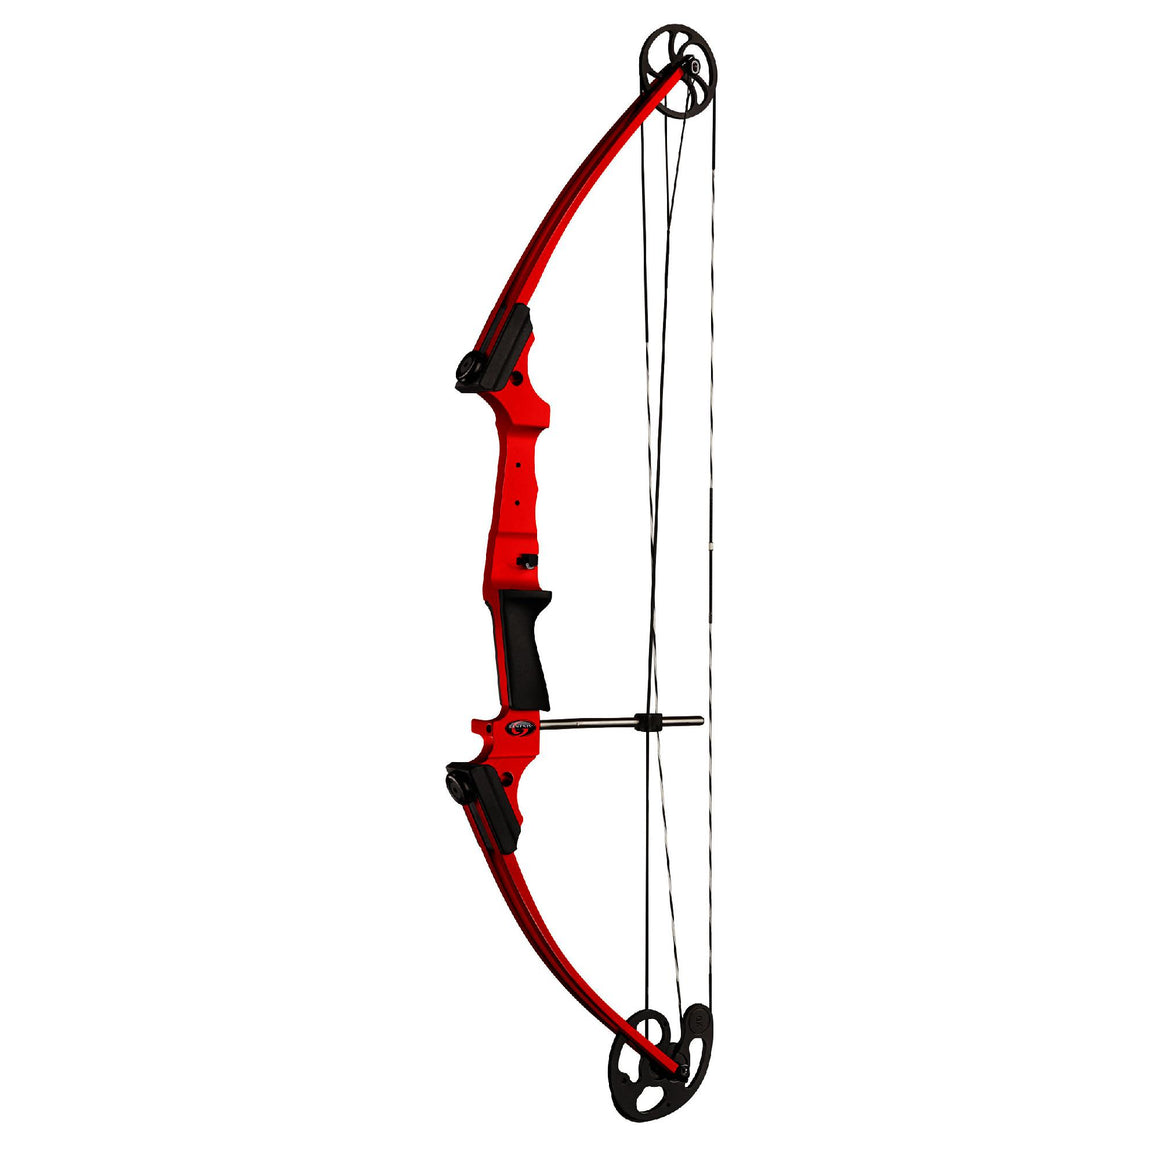 Original Bow - Right Handed, Red